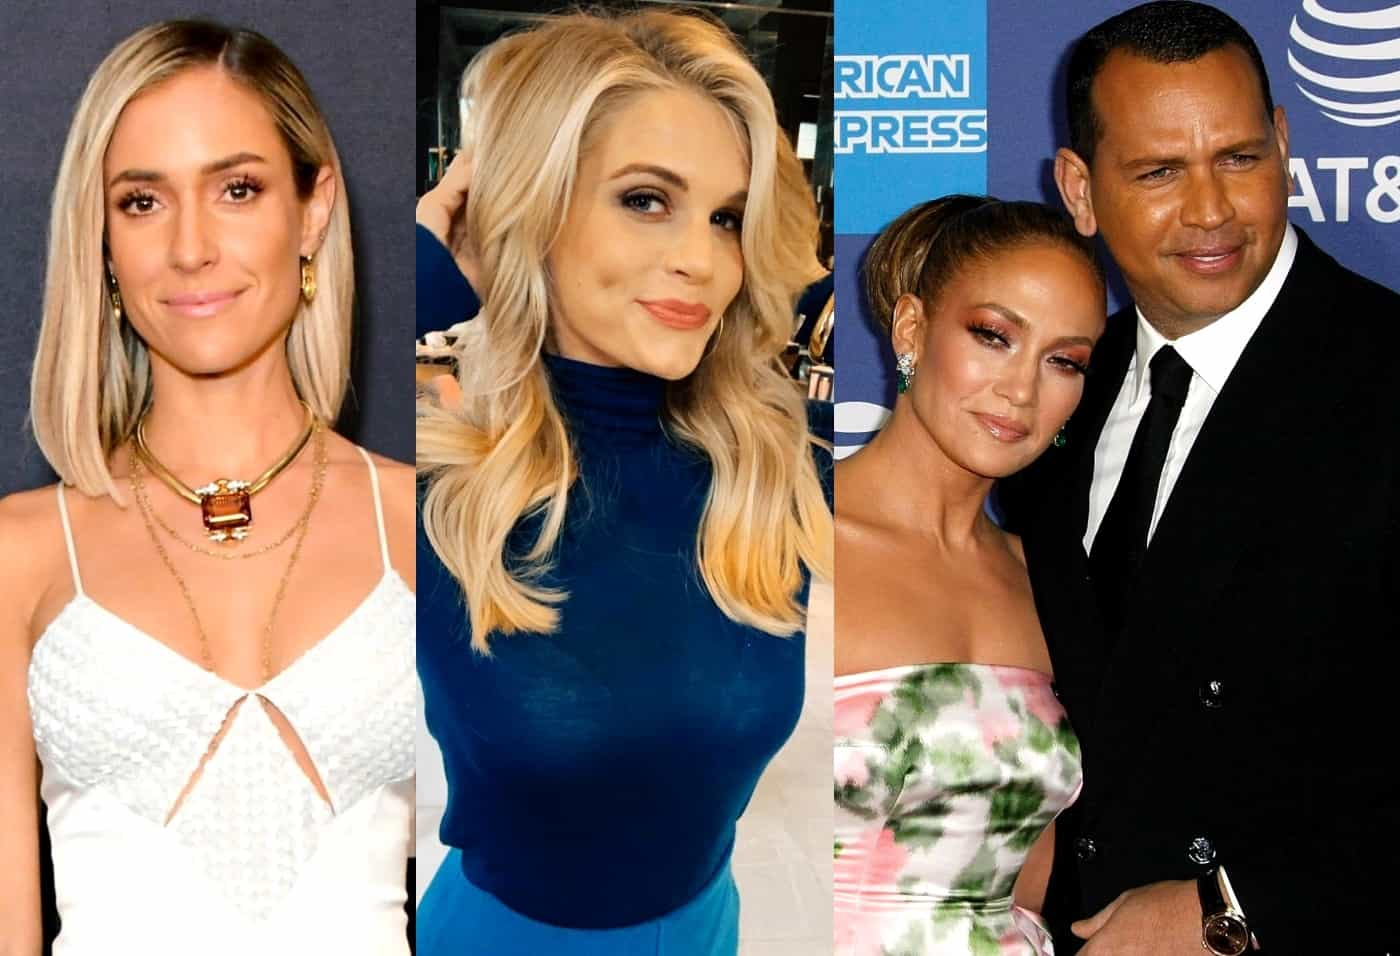 Kristin Cavallari Throws Shade at Madison LeCroy Amid Southern Charm Star's Admission of Speaking With ARod, See How She Referenced His Fiance Jennifer Lopez